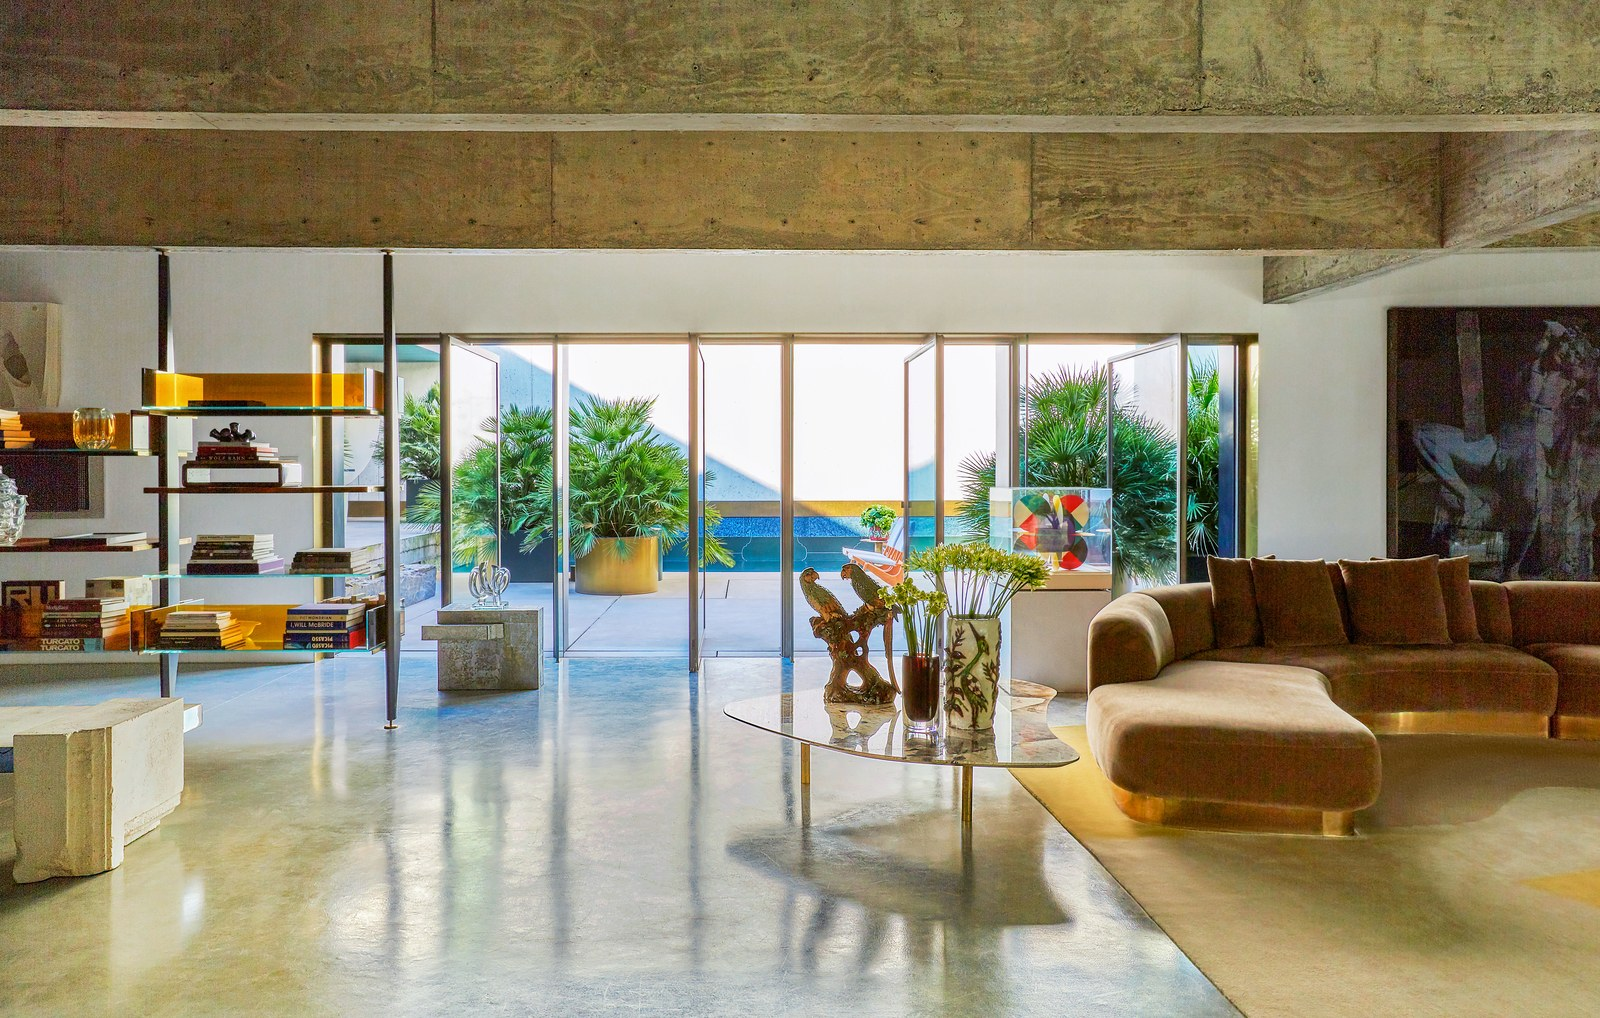 Boca do Lobo's Curated Selection Of The Best Italian Interior Designers italian interior designer Boca do Lobo's Curated Selection Of The Best Italian Interior Designers 14